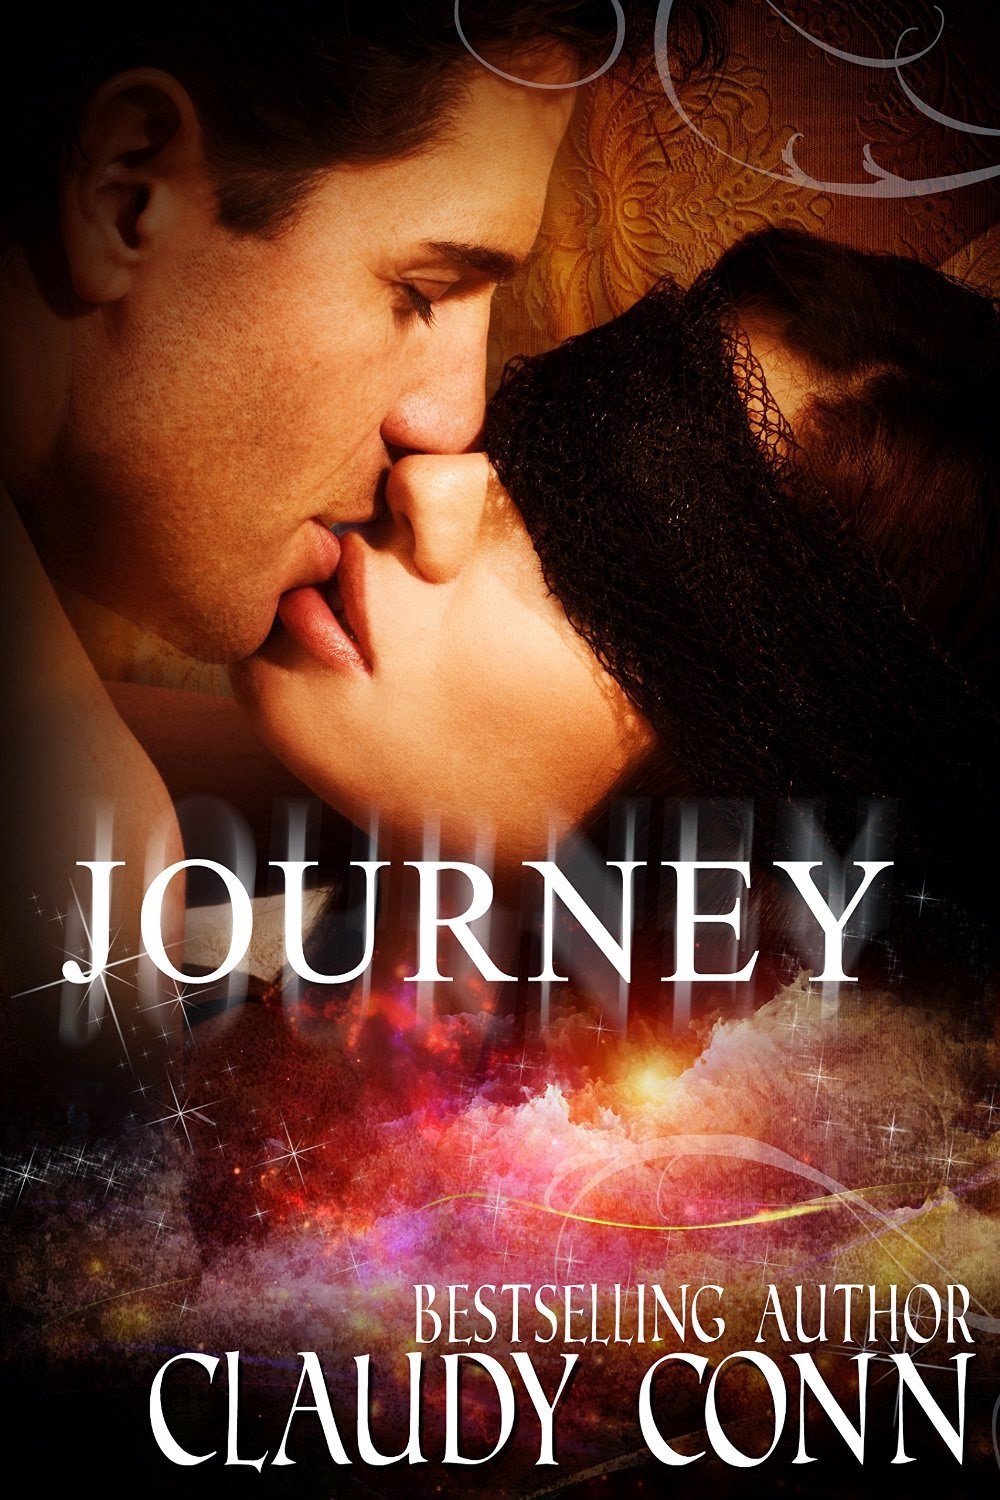 Journey by Claudy Conn (PNR)